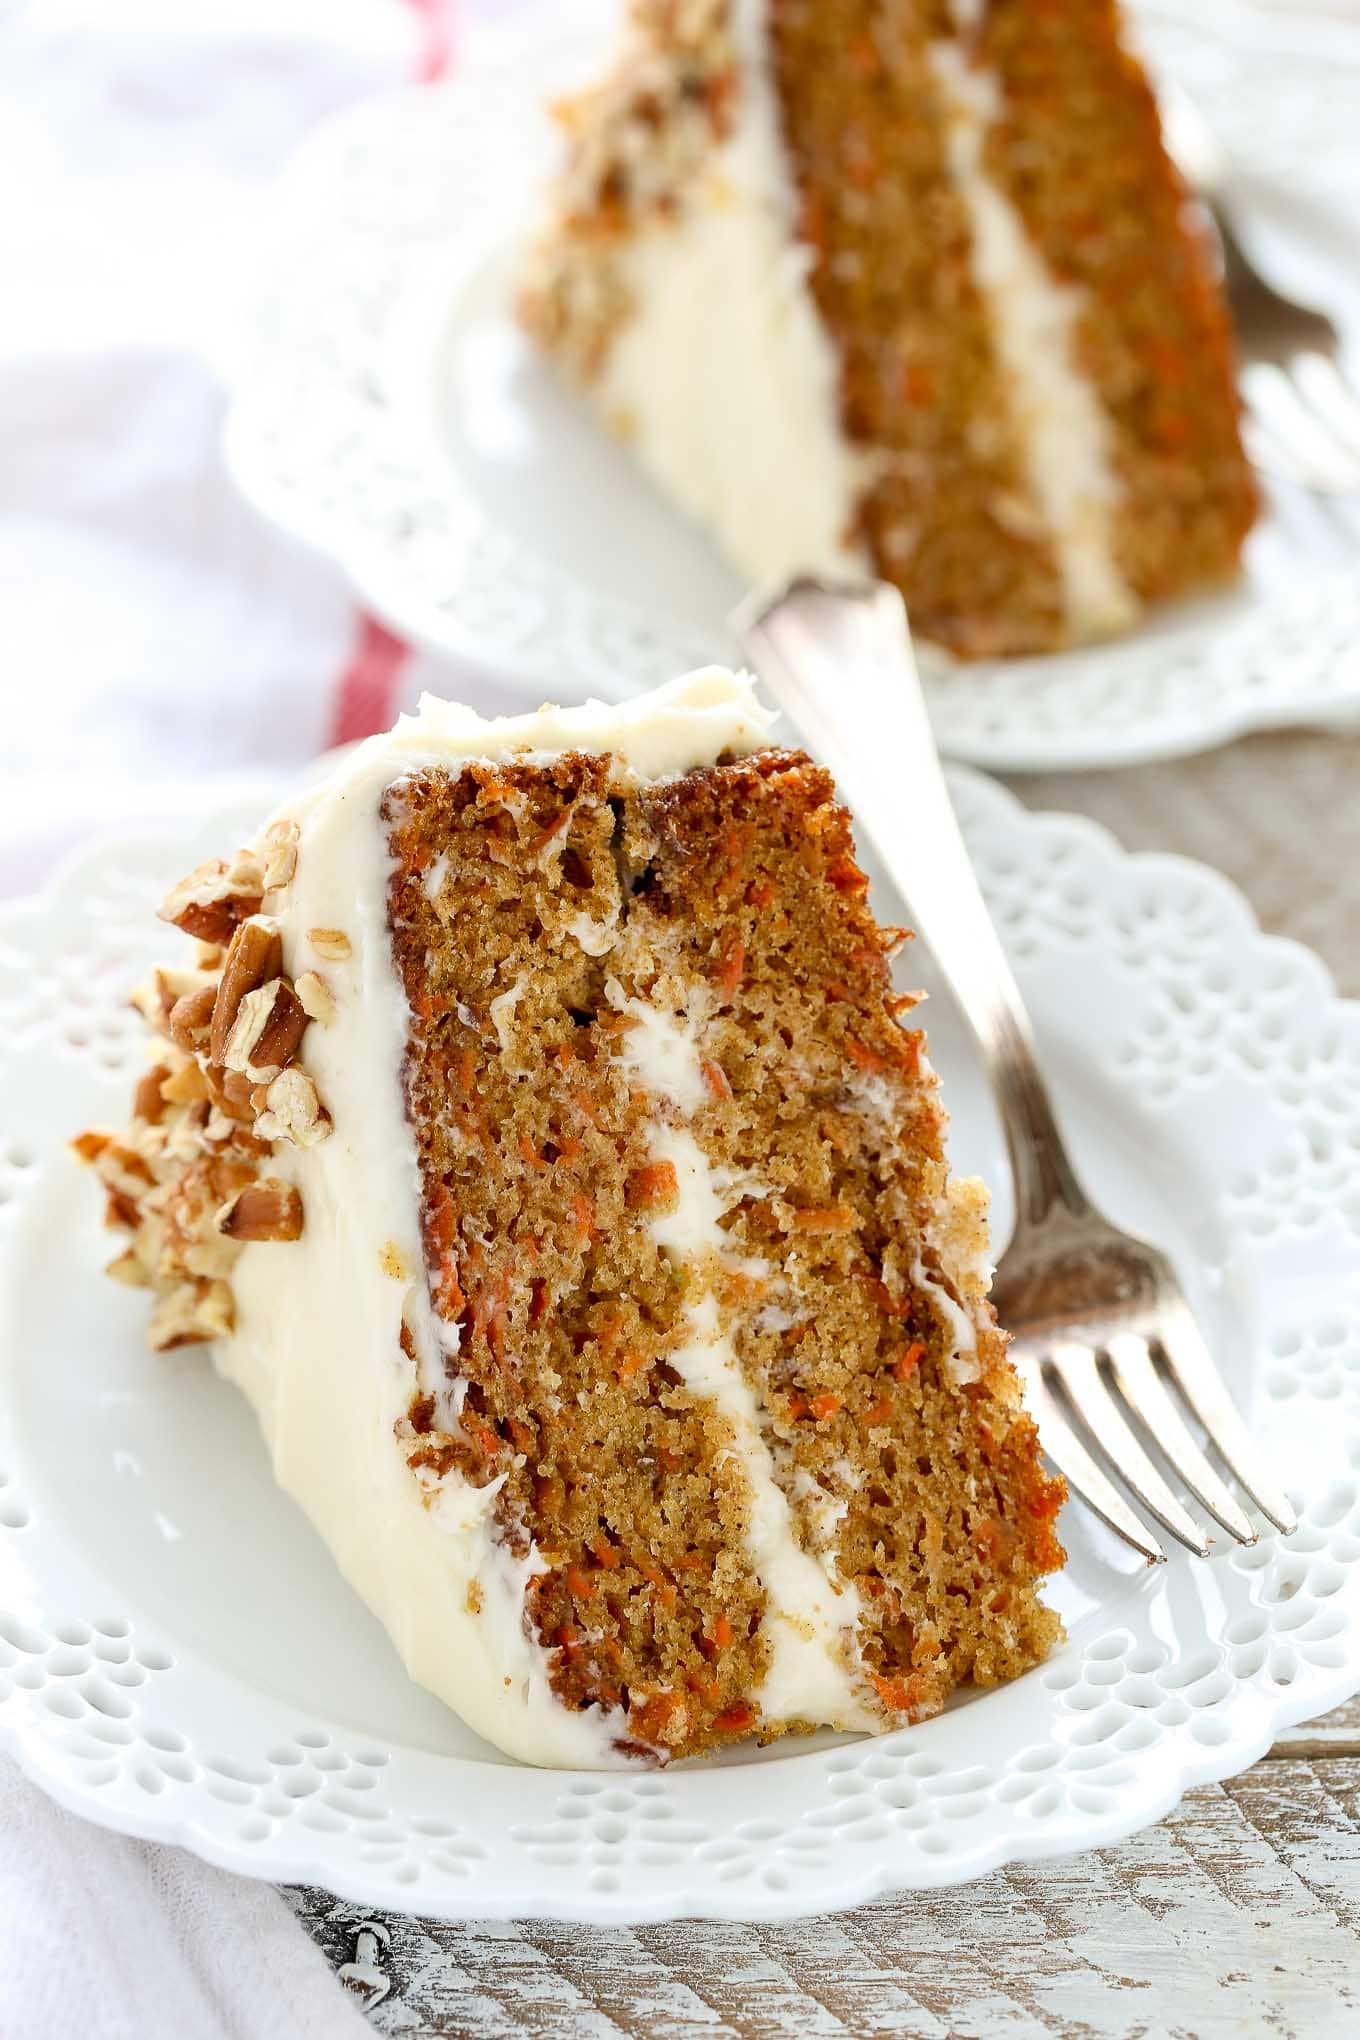 Homemade Carrot Cake With Raisins